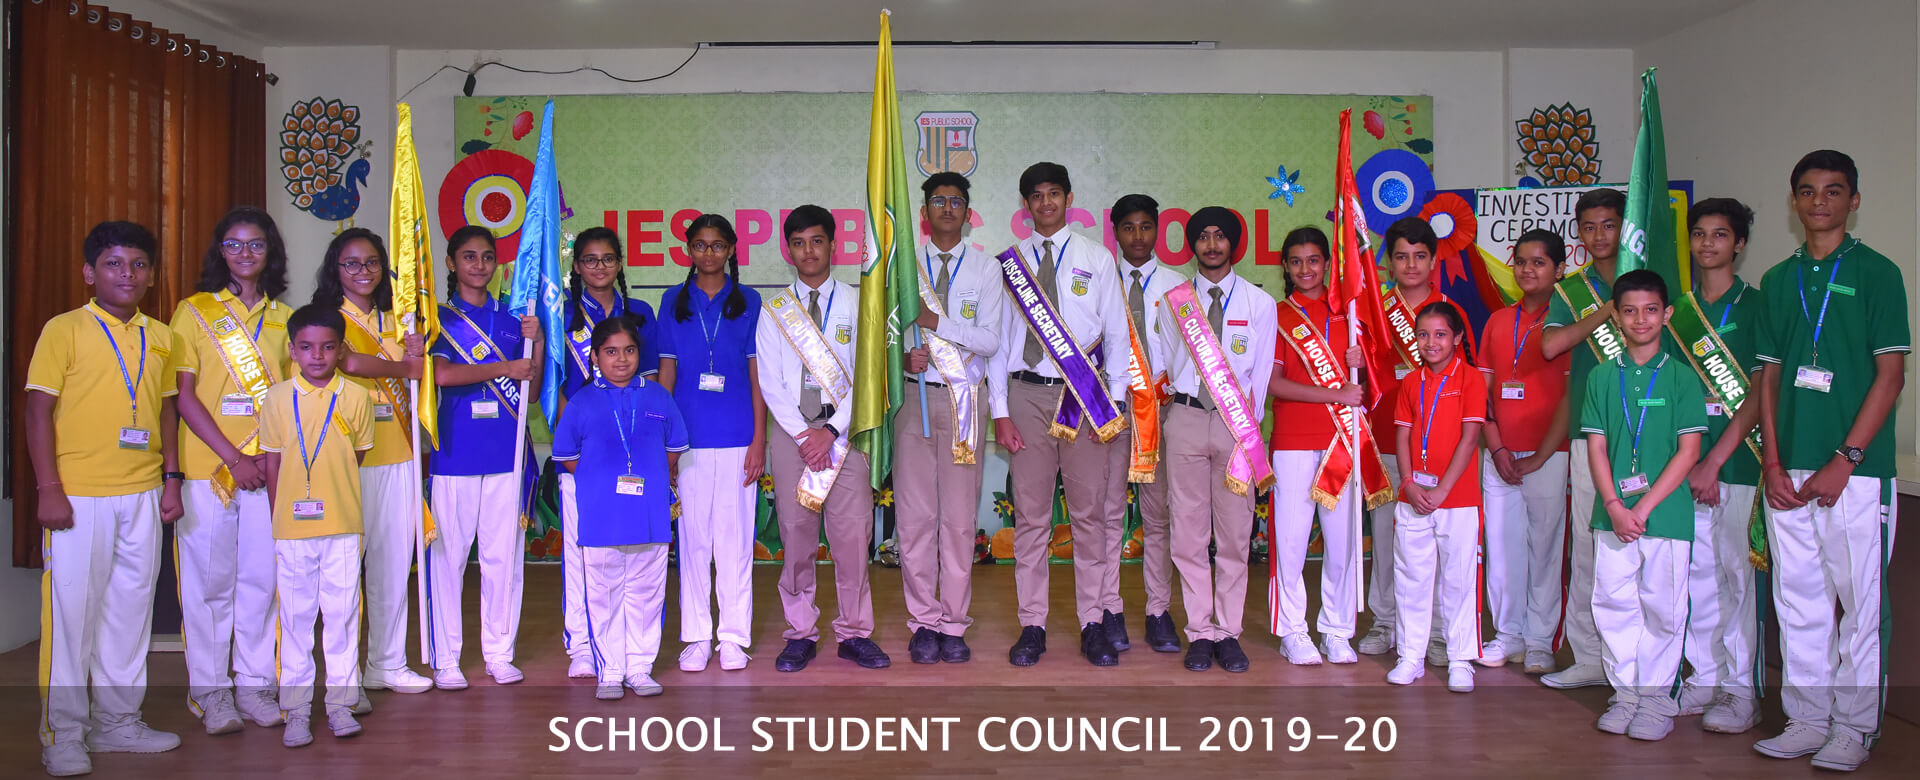 School Council 2019-20 IES Public School Bhopal